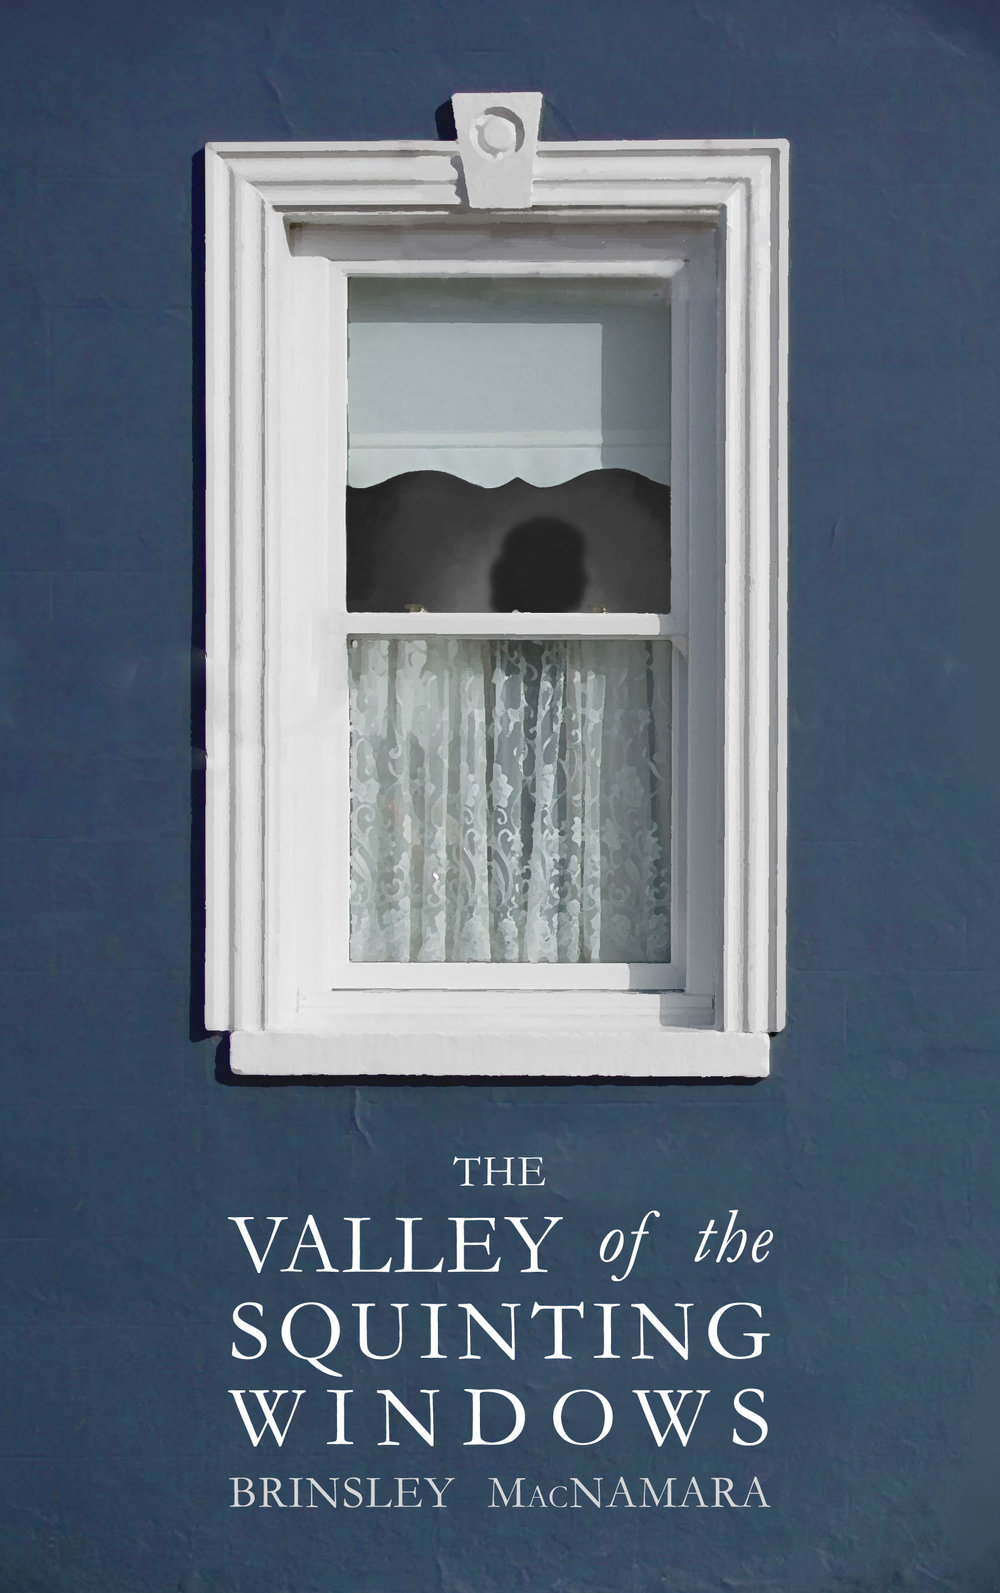 ValleyOfTheSquintingWindows_Cover.jpg